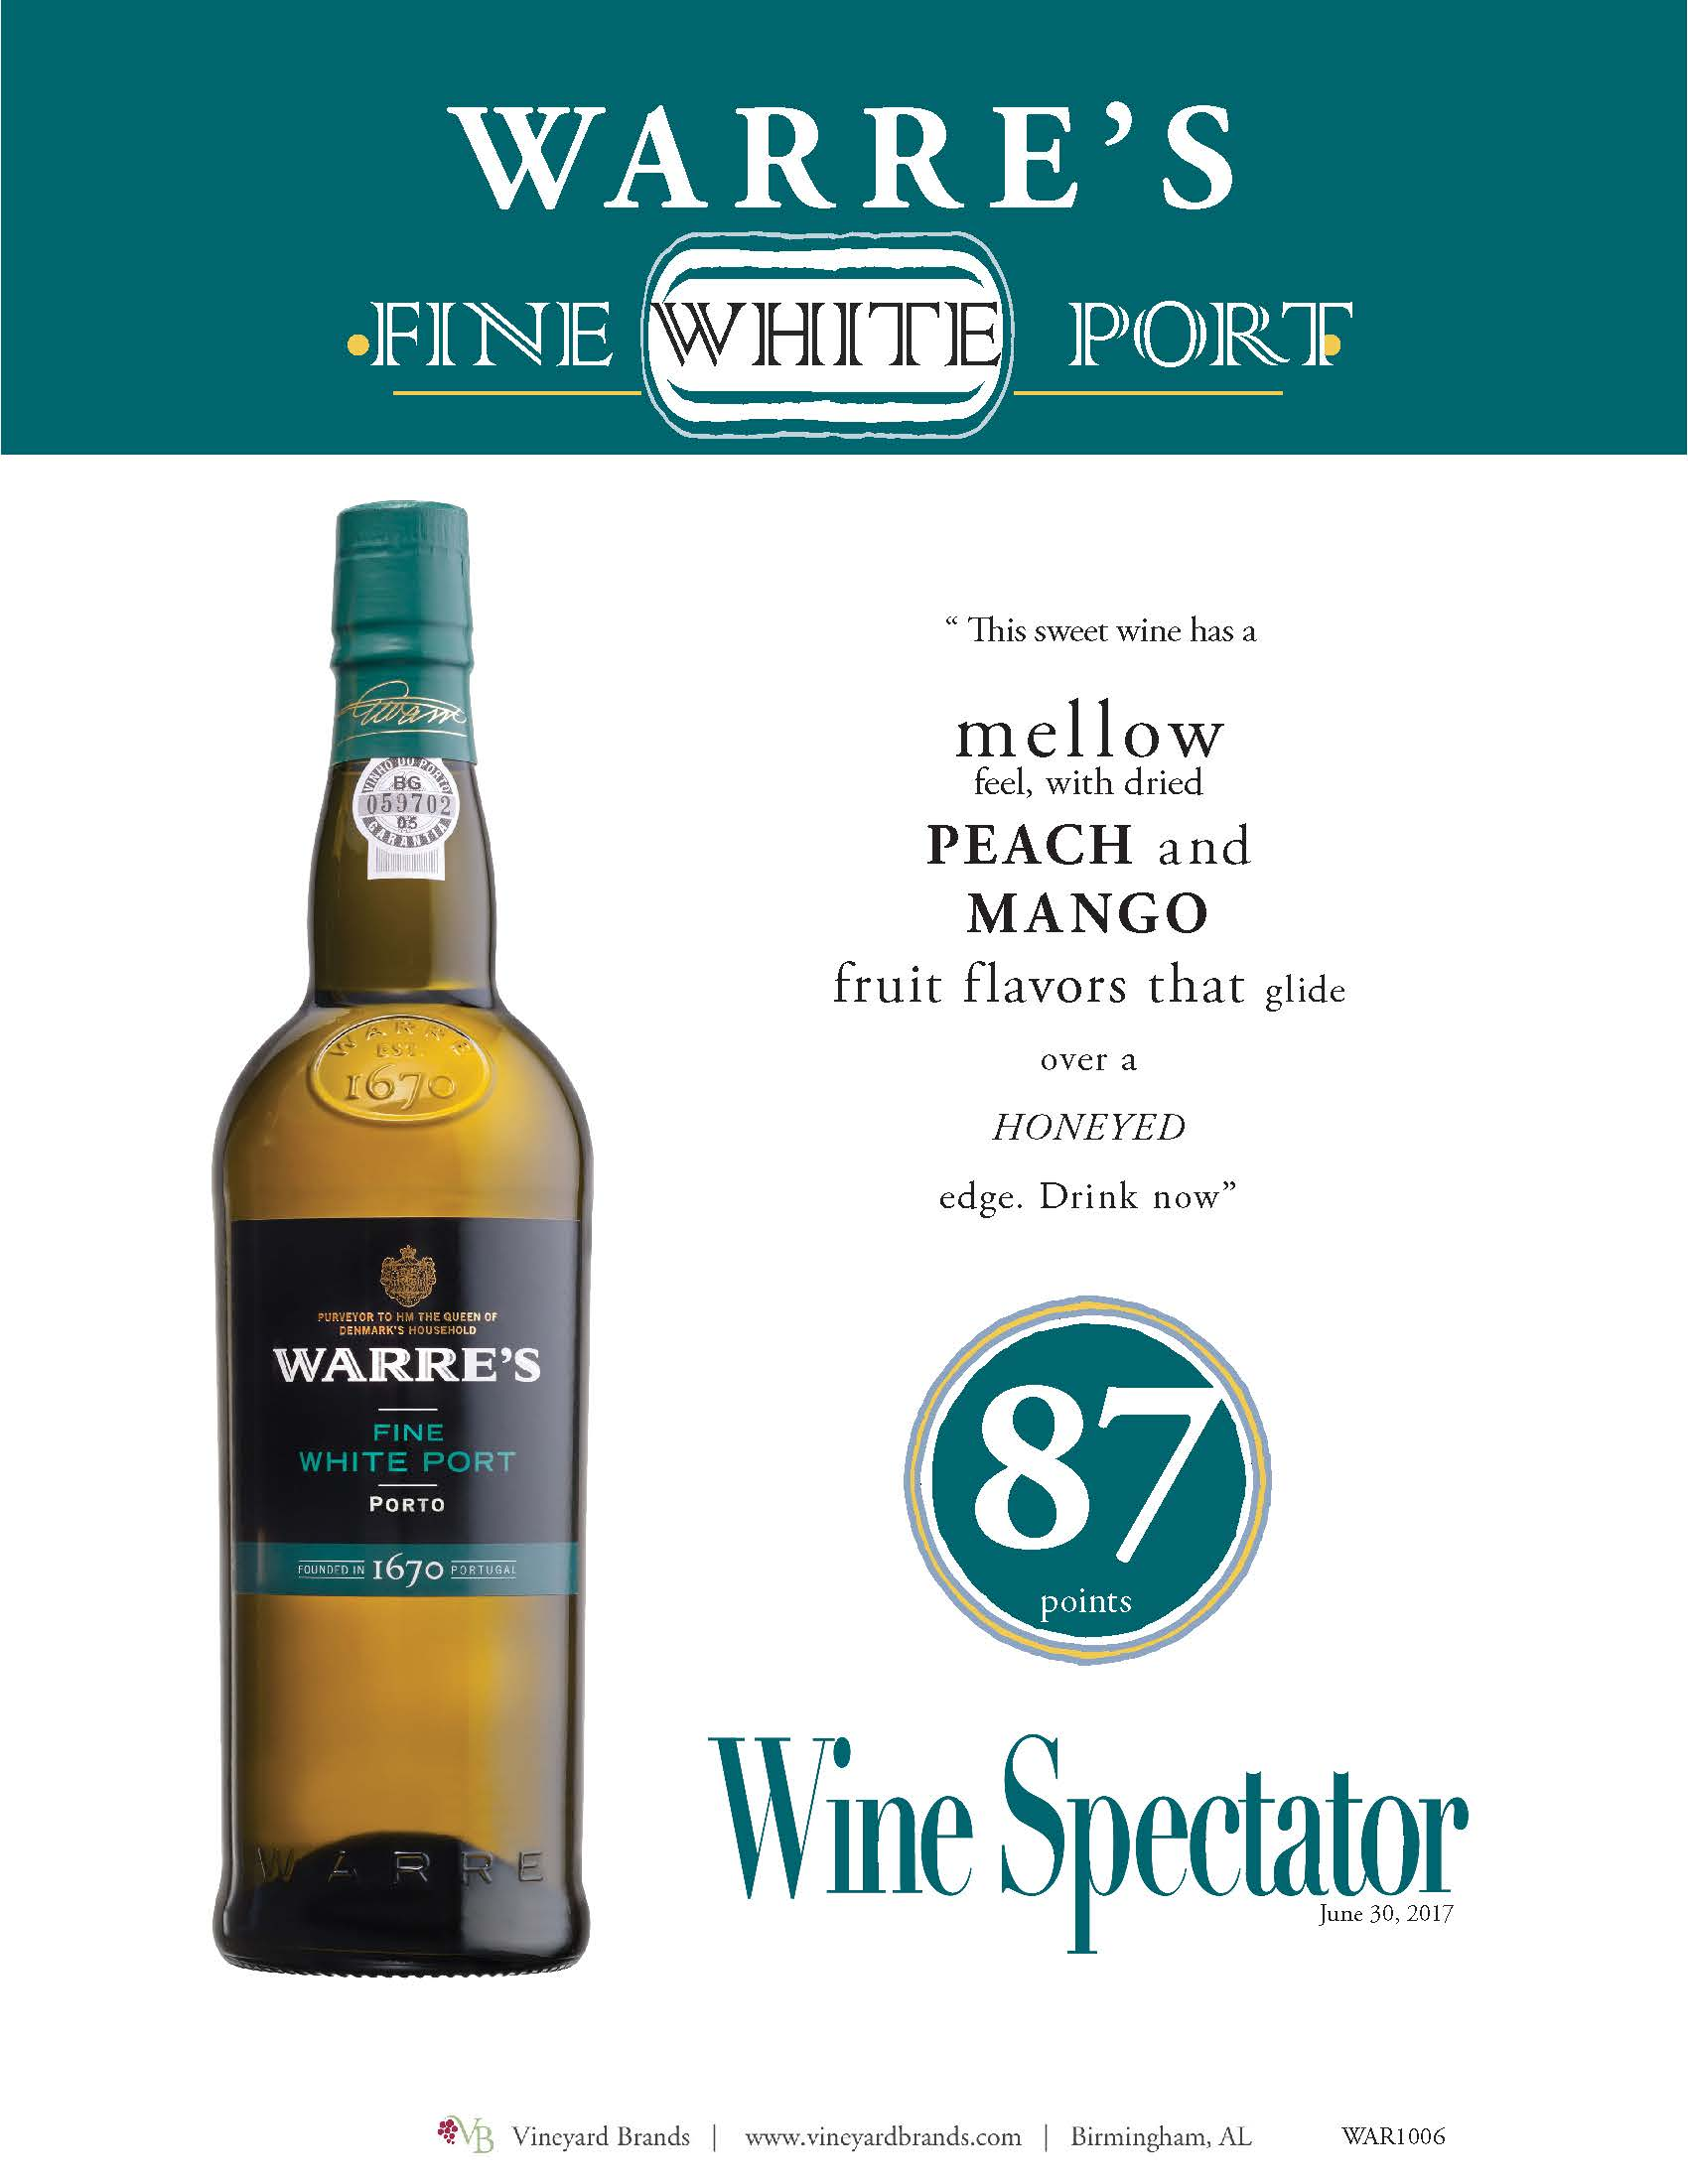 Warre's Fine White Port Wine.jpg